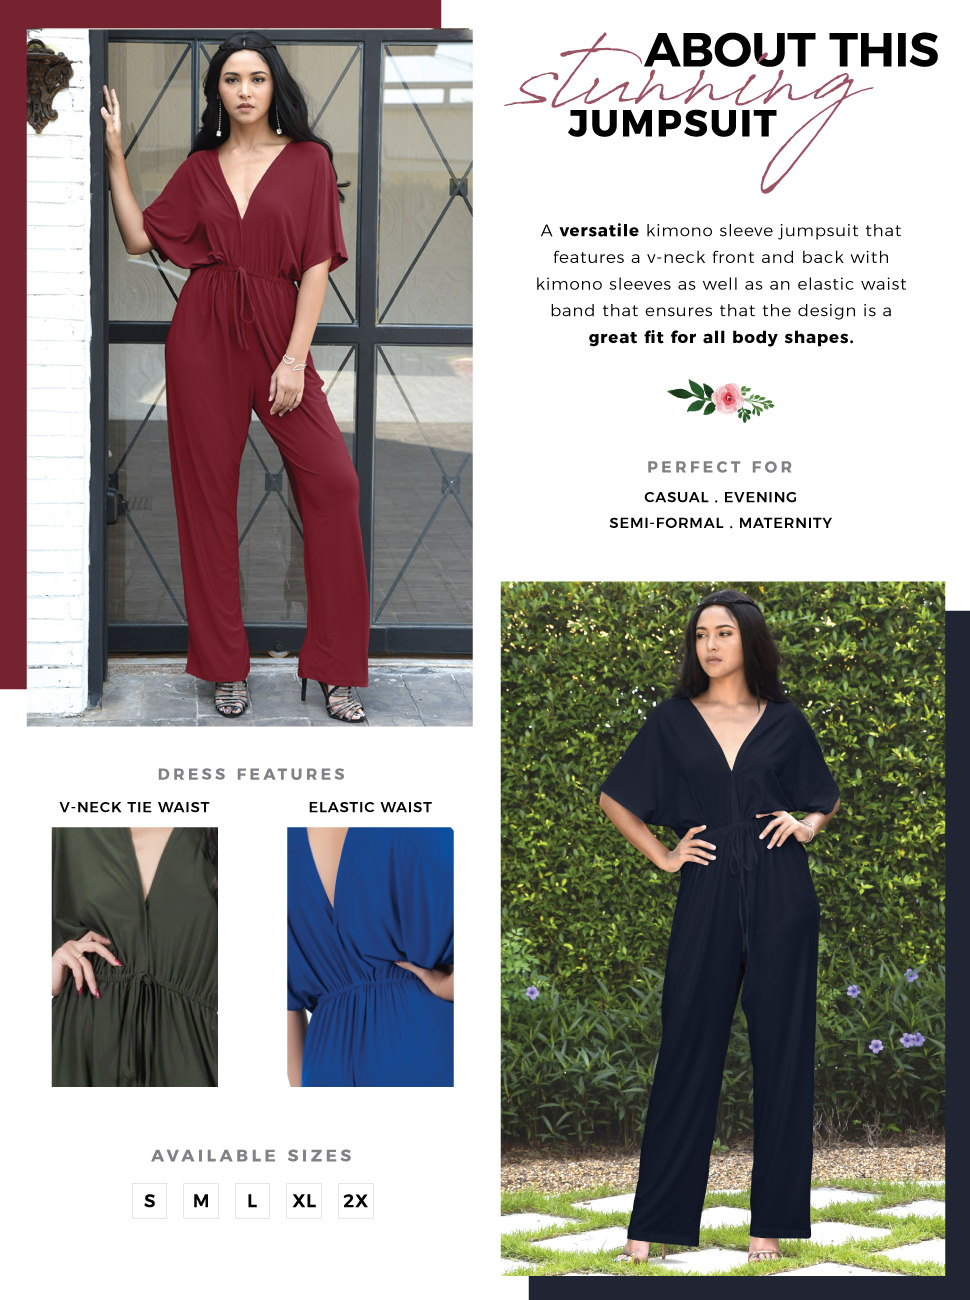 38476ffd7c62 Womens Short Kimono Sleeve One Piece Jumpsuit Cocktail Romper Pant Suit